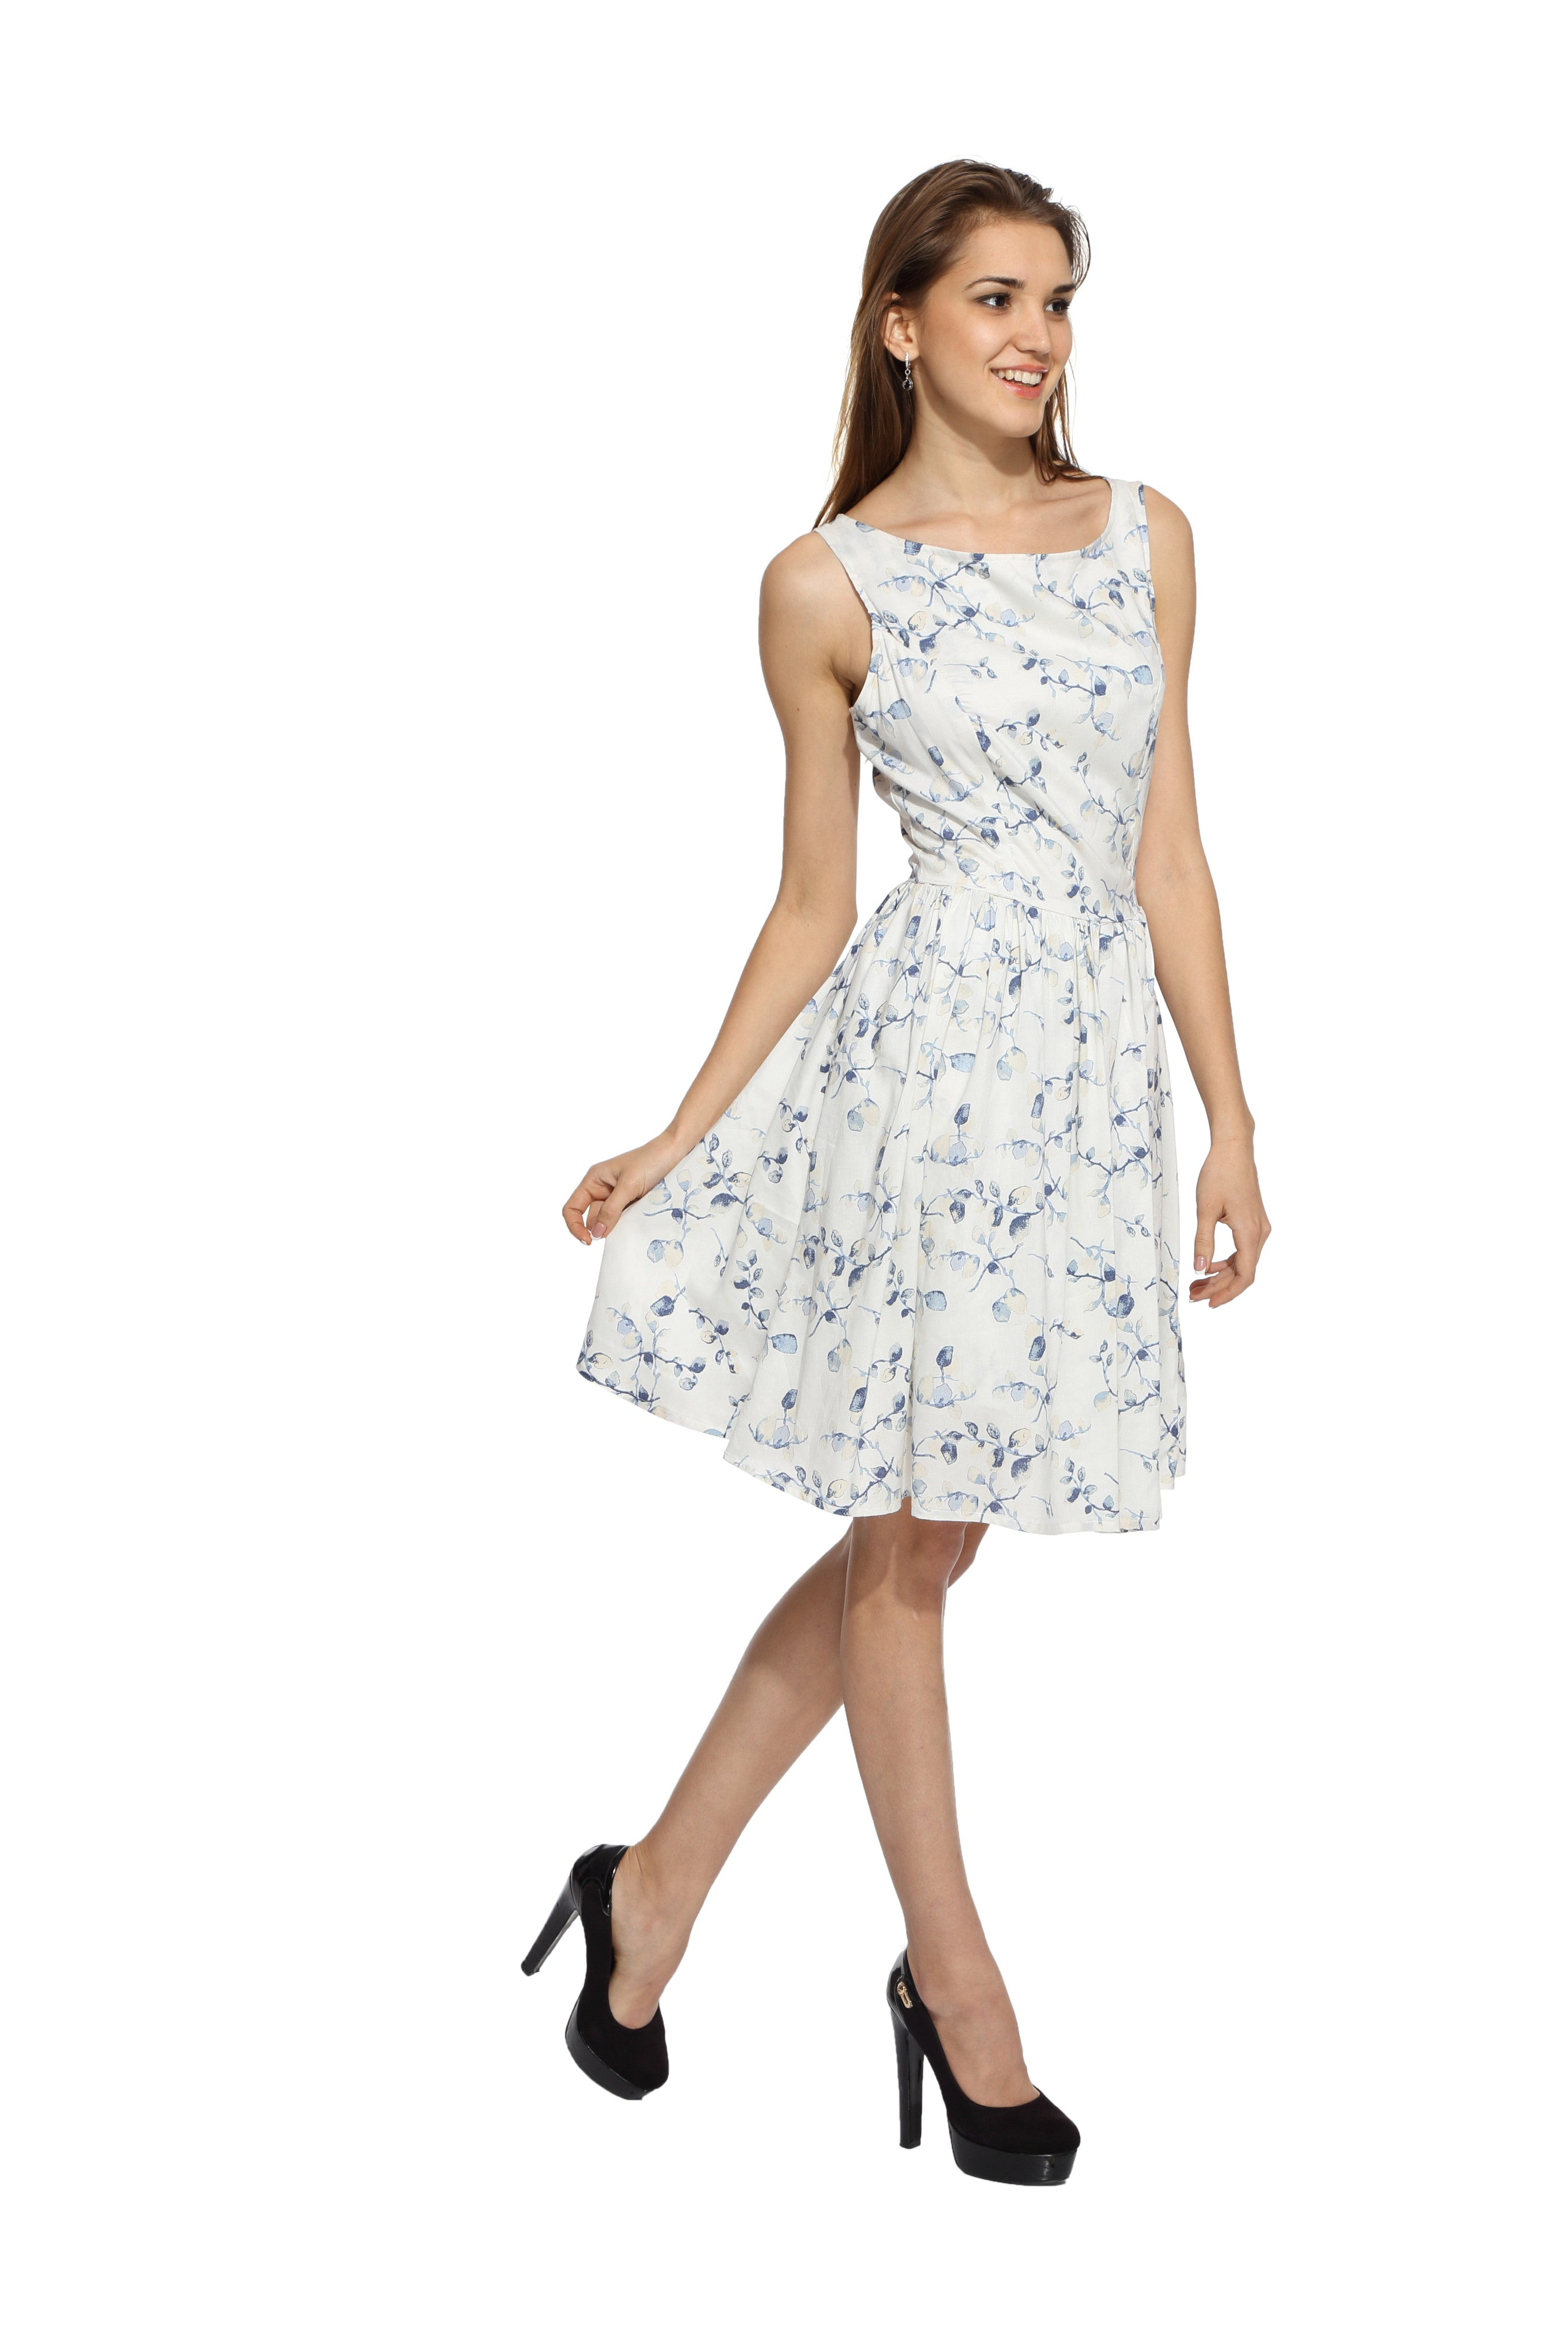 White Floral Flare Dress Side